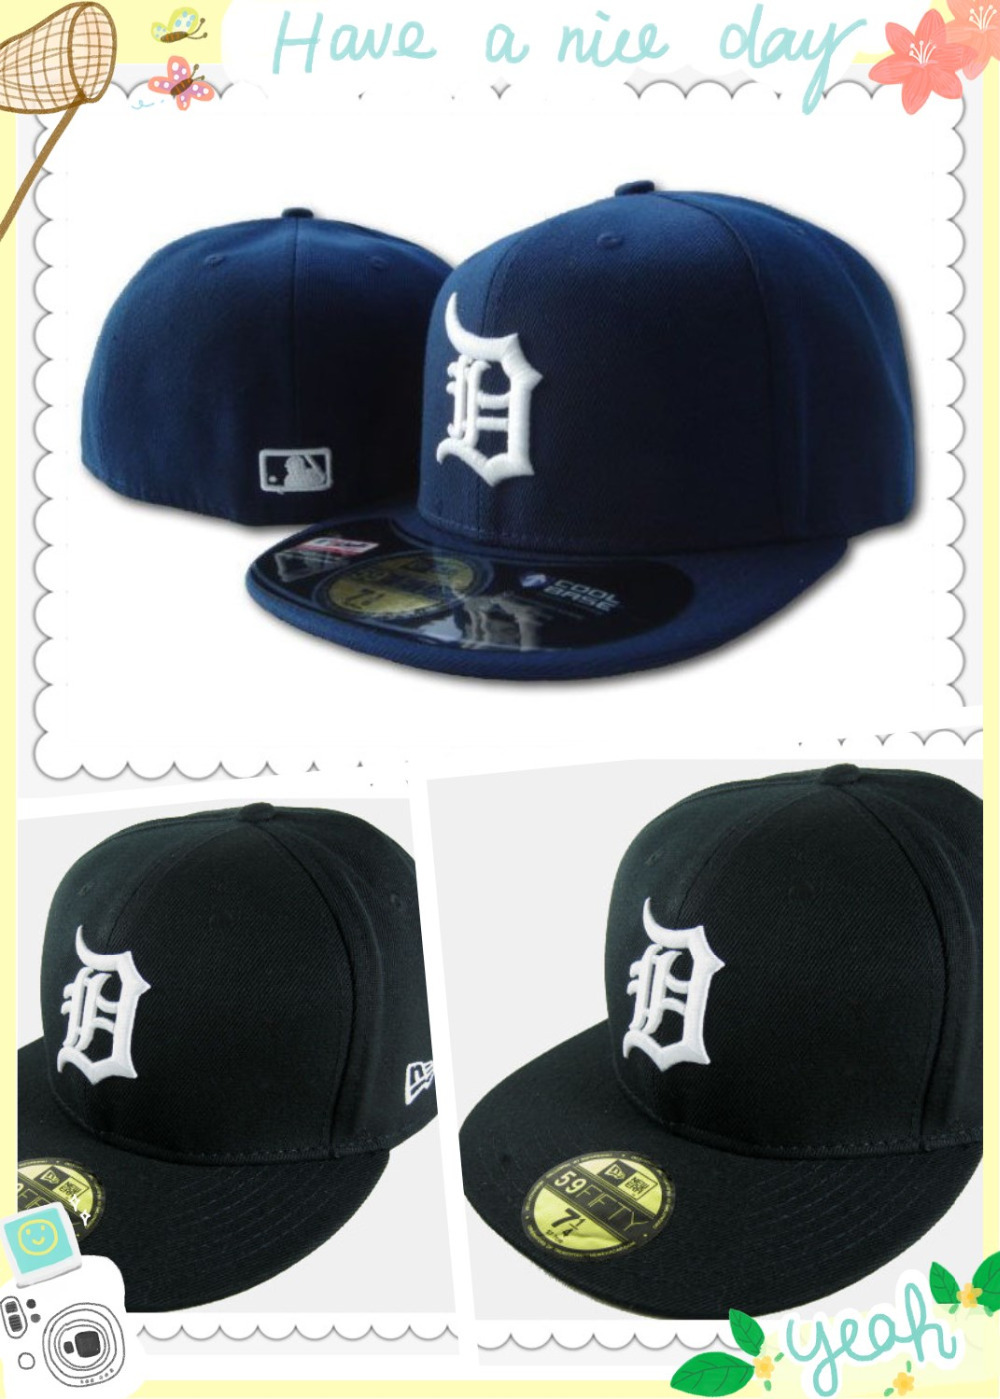 Free shipping! Wholesale Detroit Tigers sport team fitted cap flat brim on field full closed design baseball hat navy blue/black(China (Mainland))